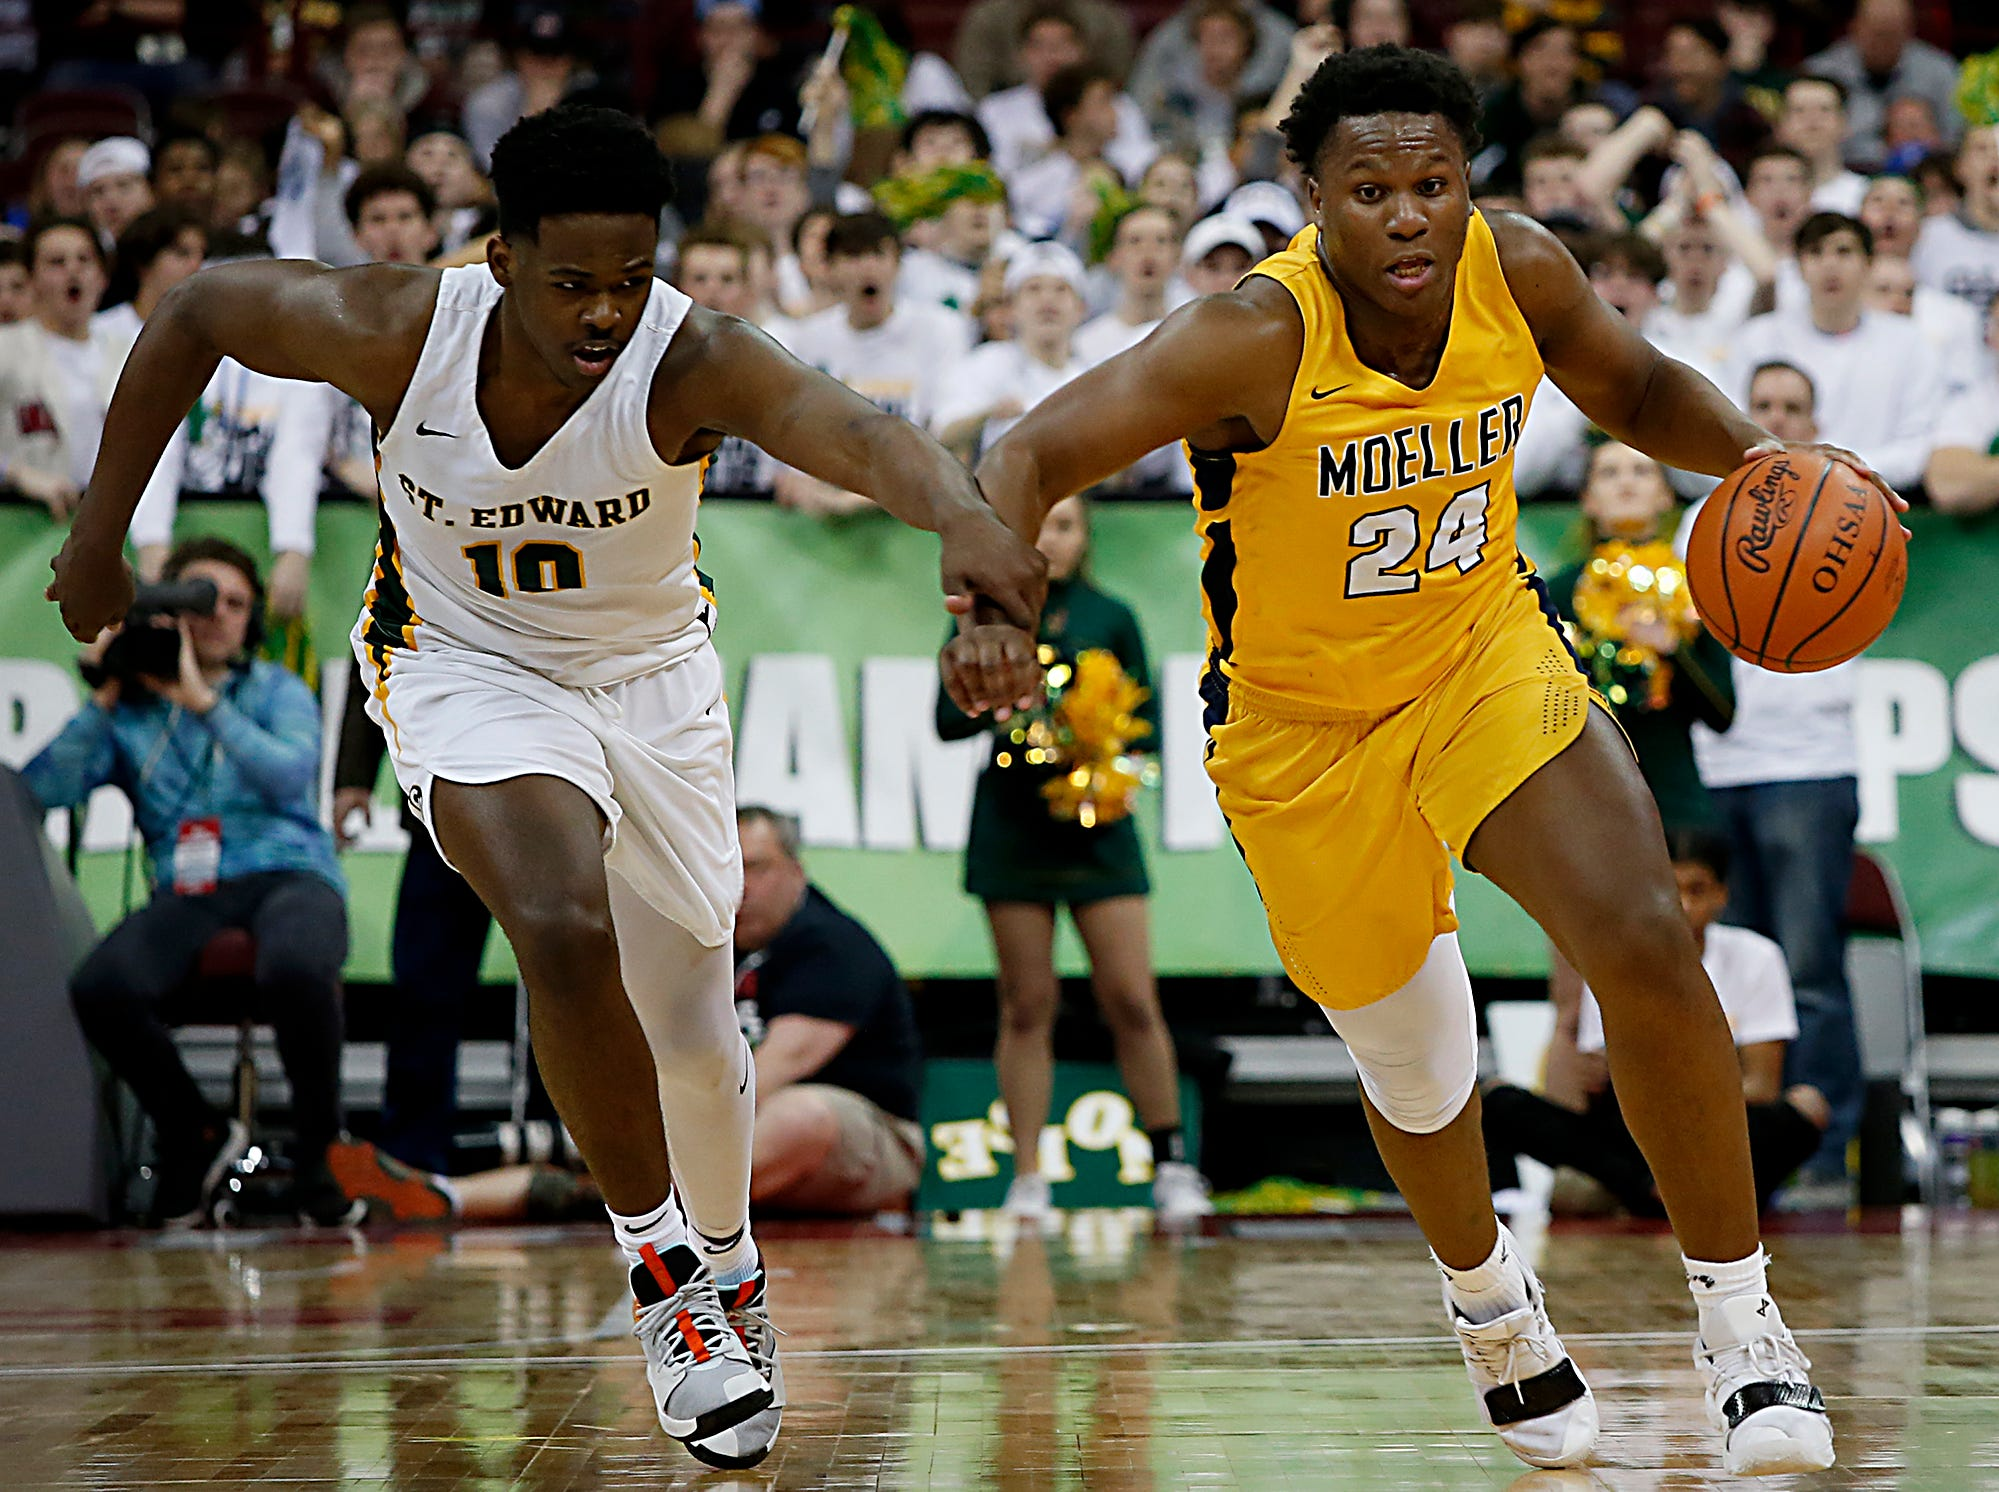 Moeller forward Alex Williams is pursued by St. Edward guard/forward Devontae Blanton during their Division I semifinal at the Schottenstein Center in Columbus Friday, March 22, 2019.